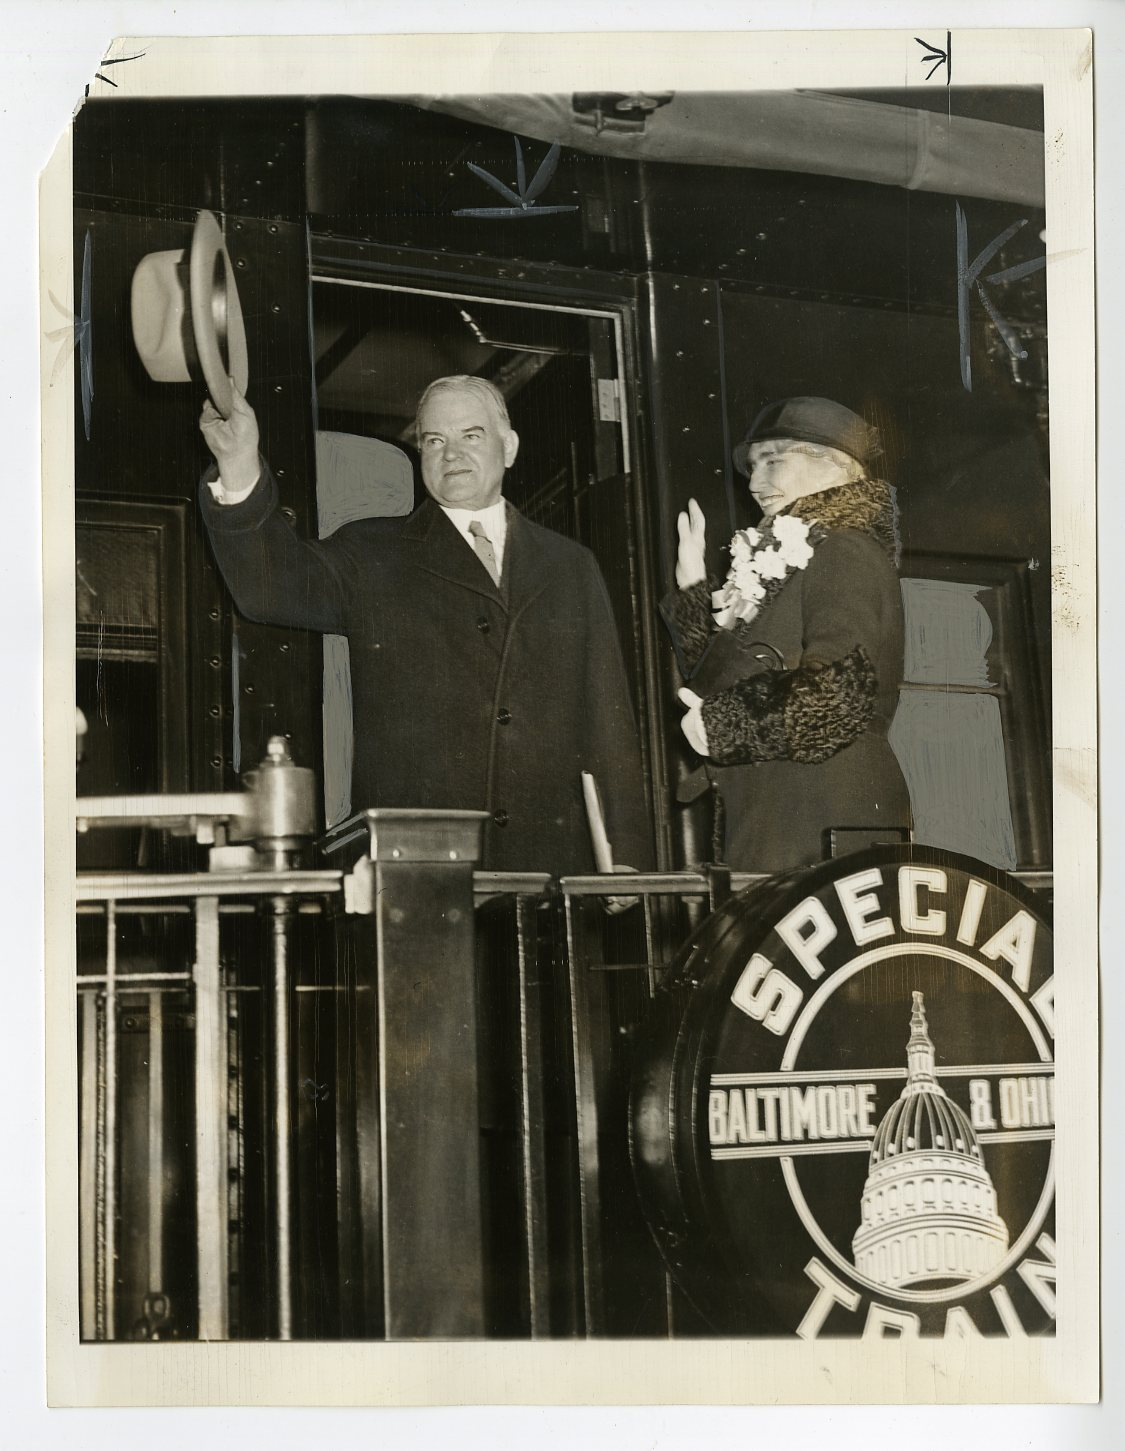 President and Mrs. Hoover photographed in the rear of a train that they traveled in. November 3, 1932